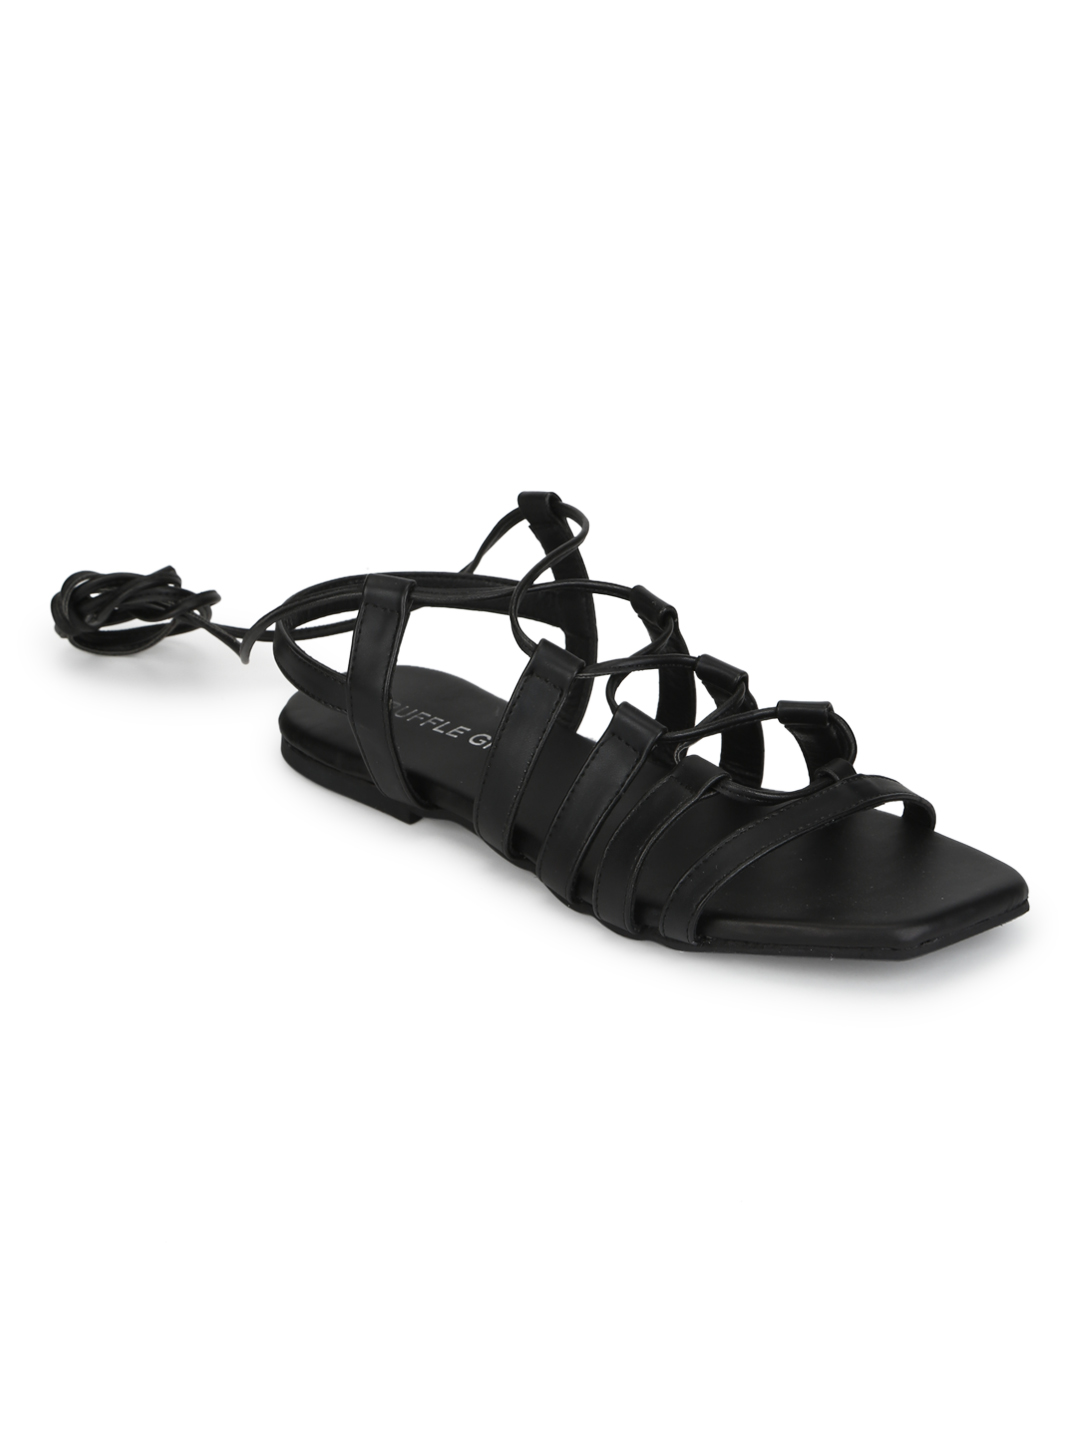 Truffle Collection | Truffle Collection Black PU Lace Up Gladiator Sandals